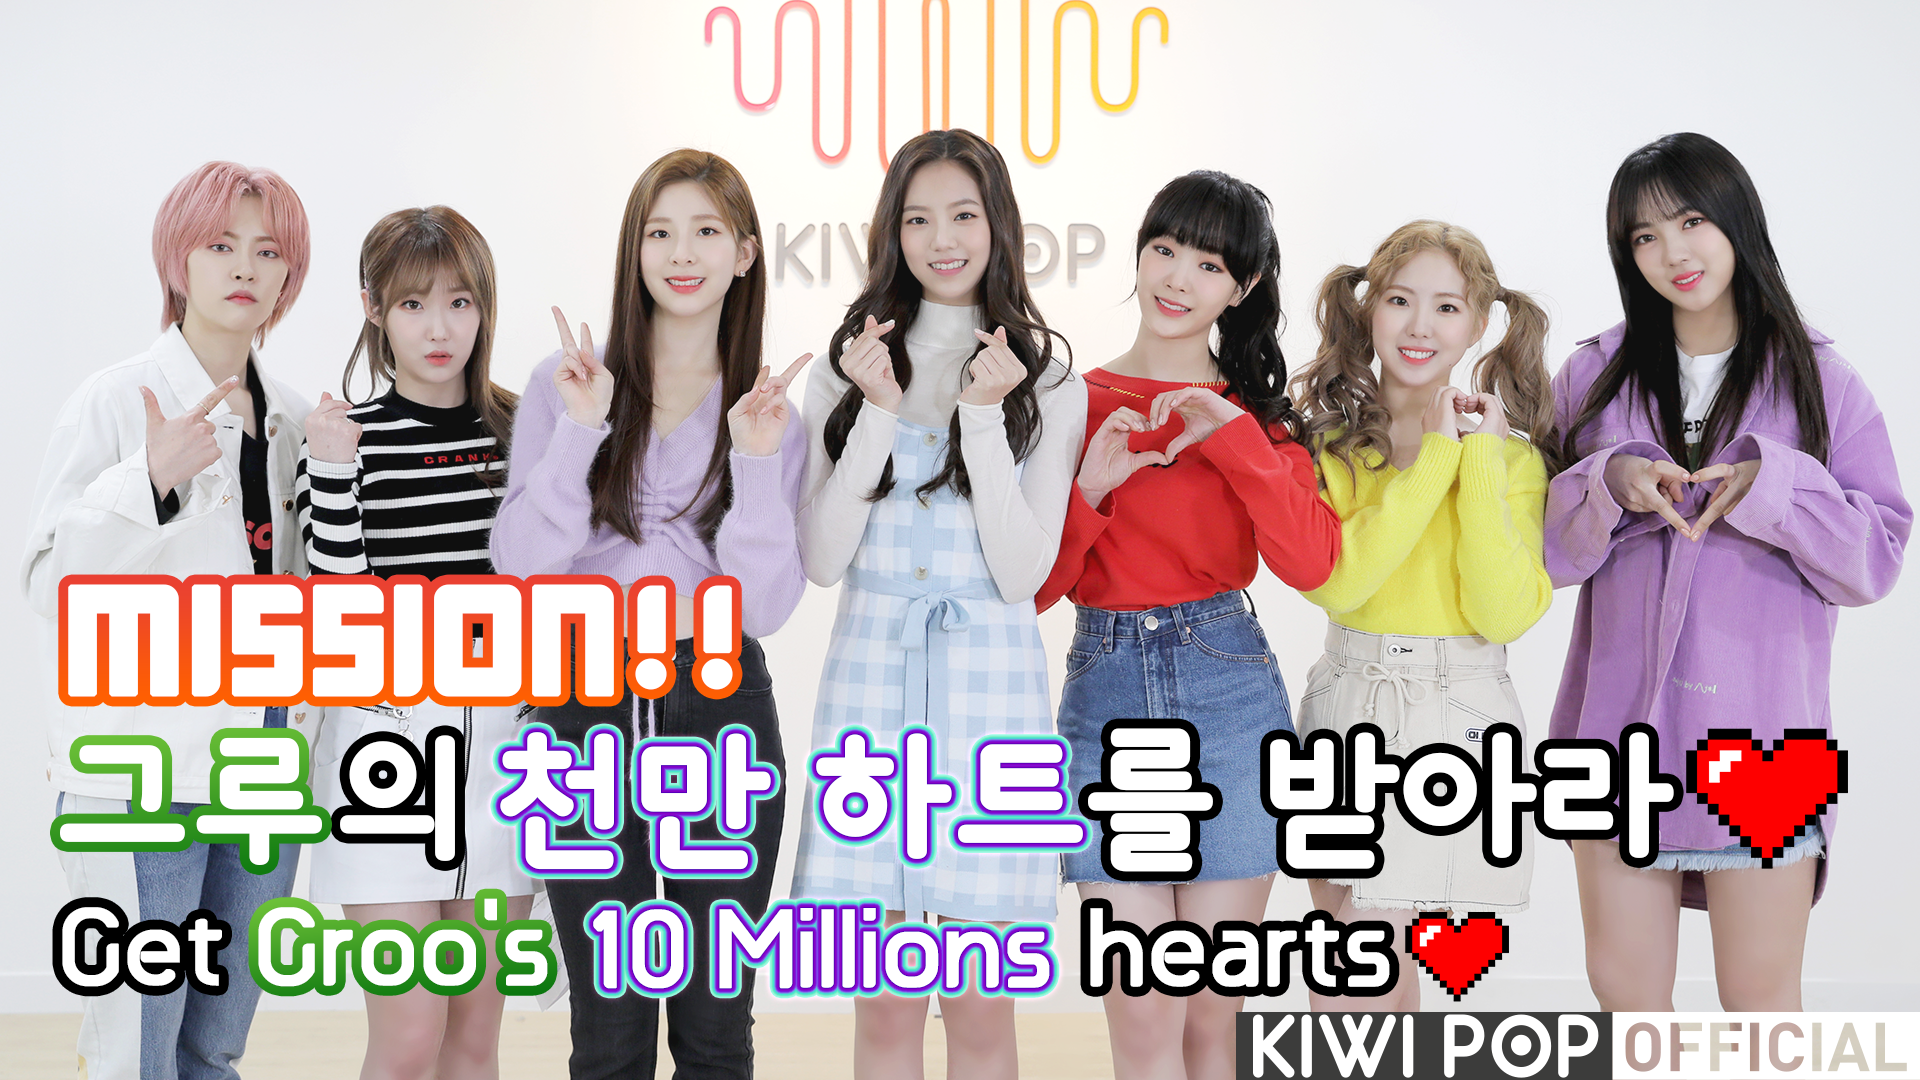 [GWSN V] Mission!! Get Groo's 10 millions hearts❤️